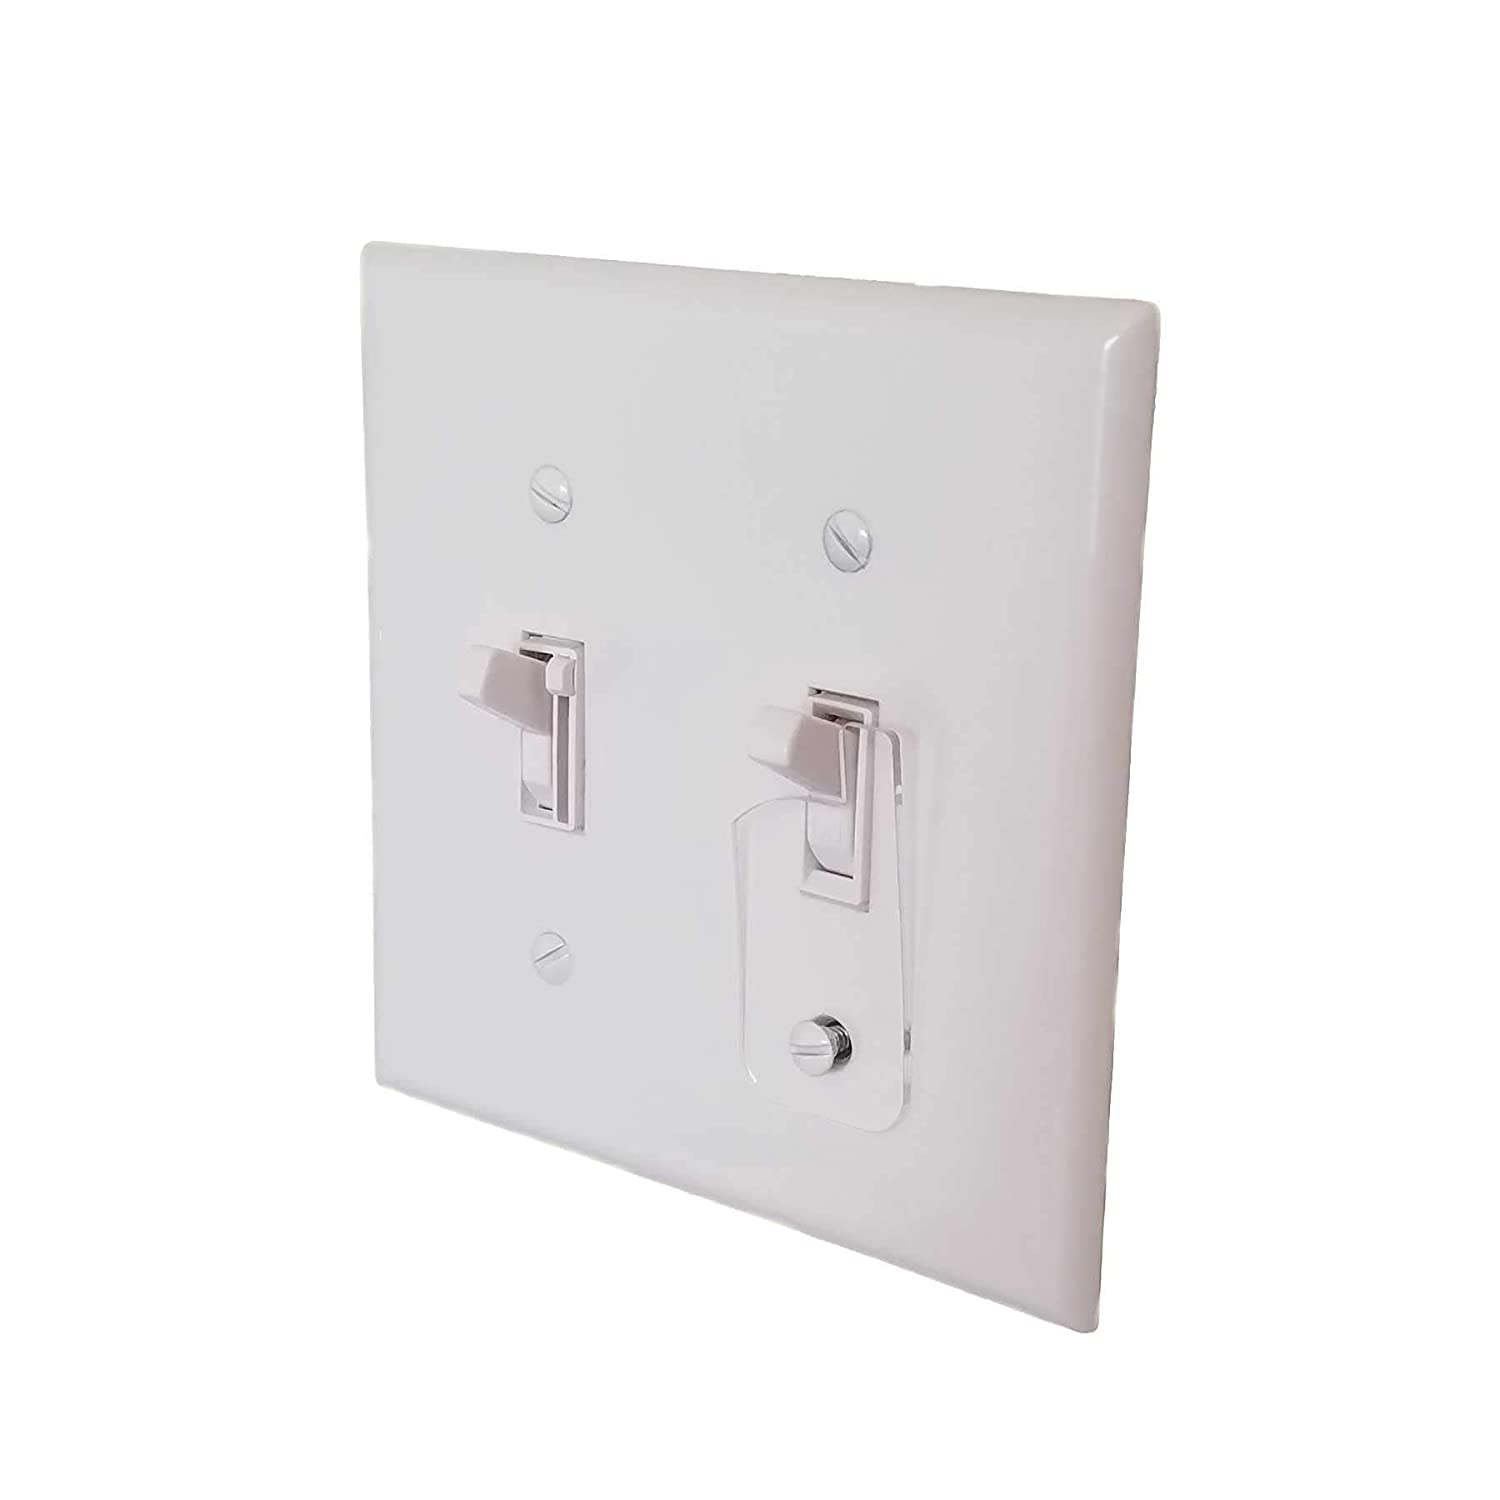 Toggle Switch Light Switch Guard Protectors, Child Safe, Residential ...